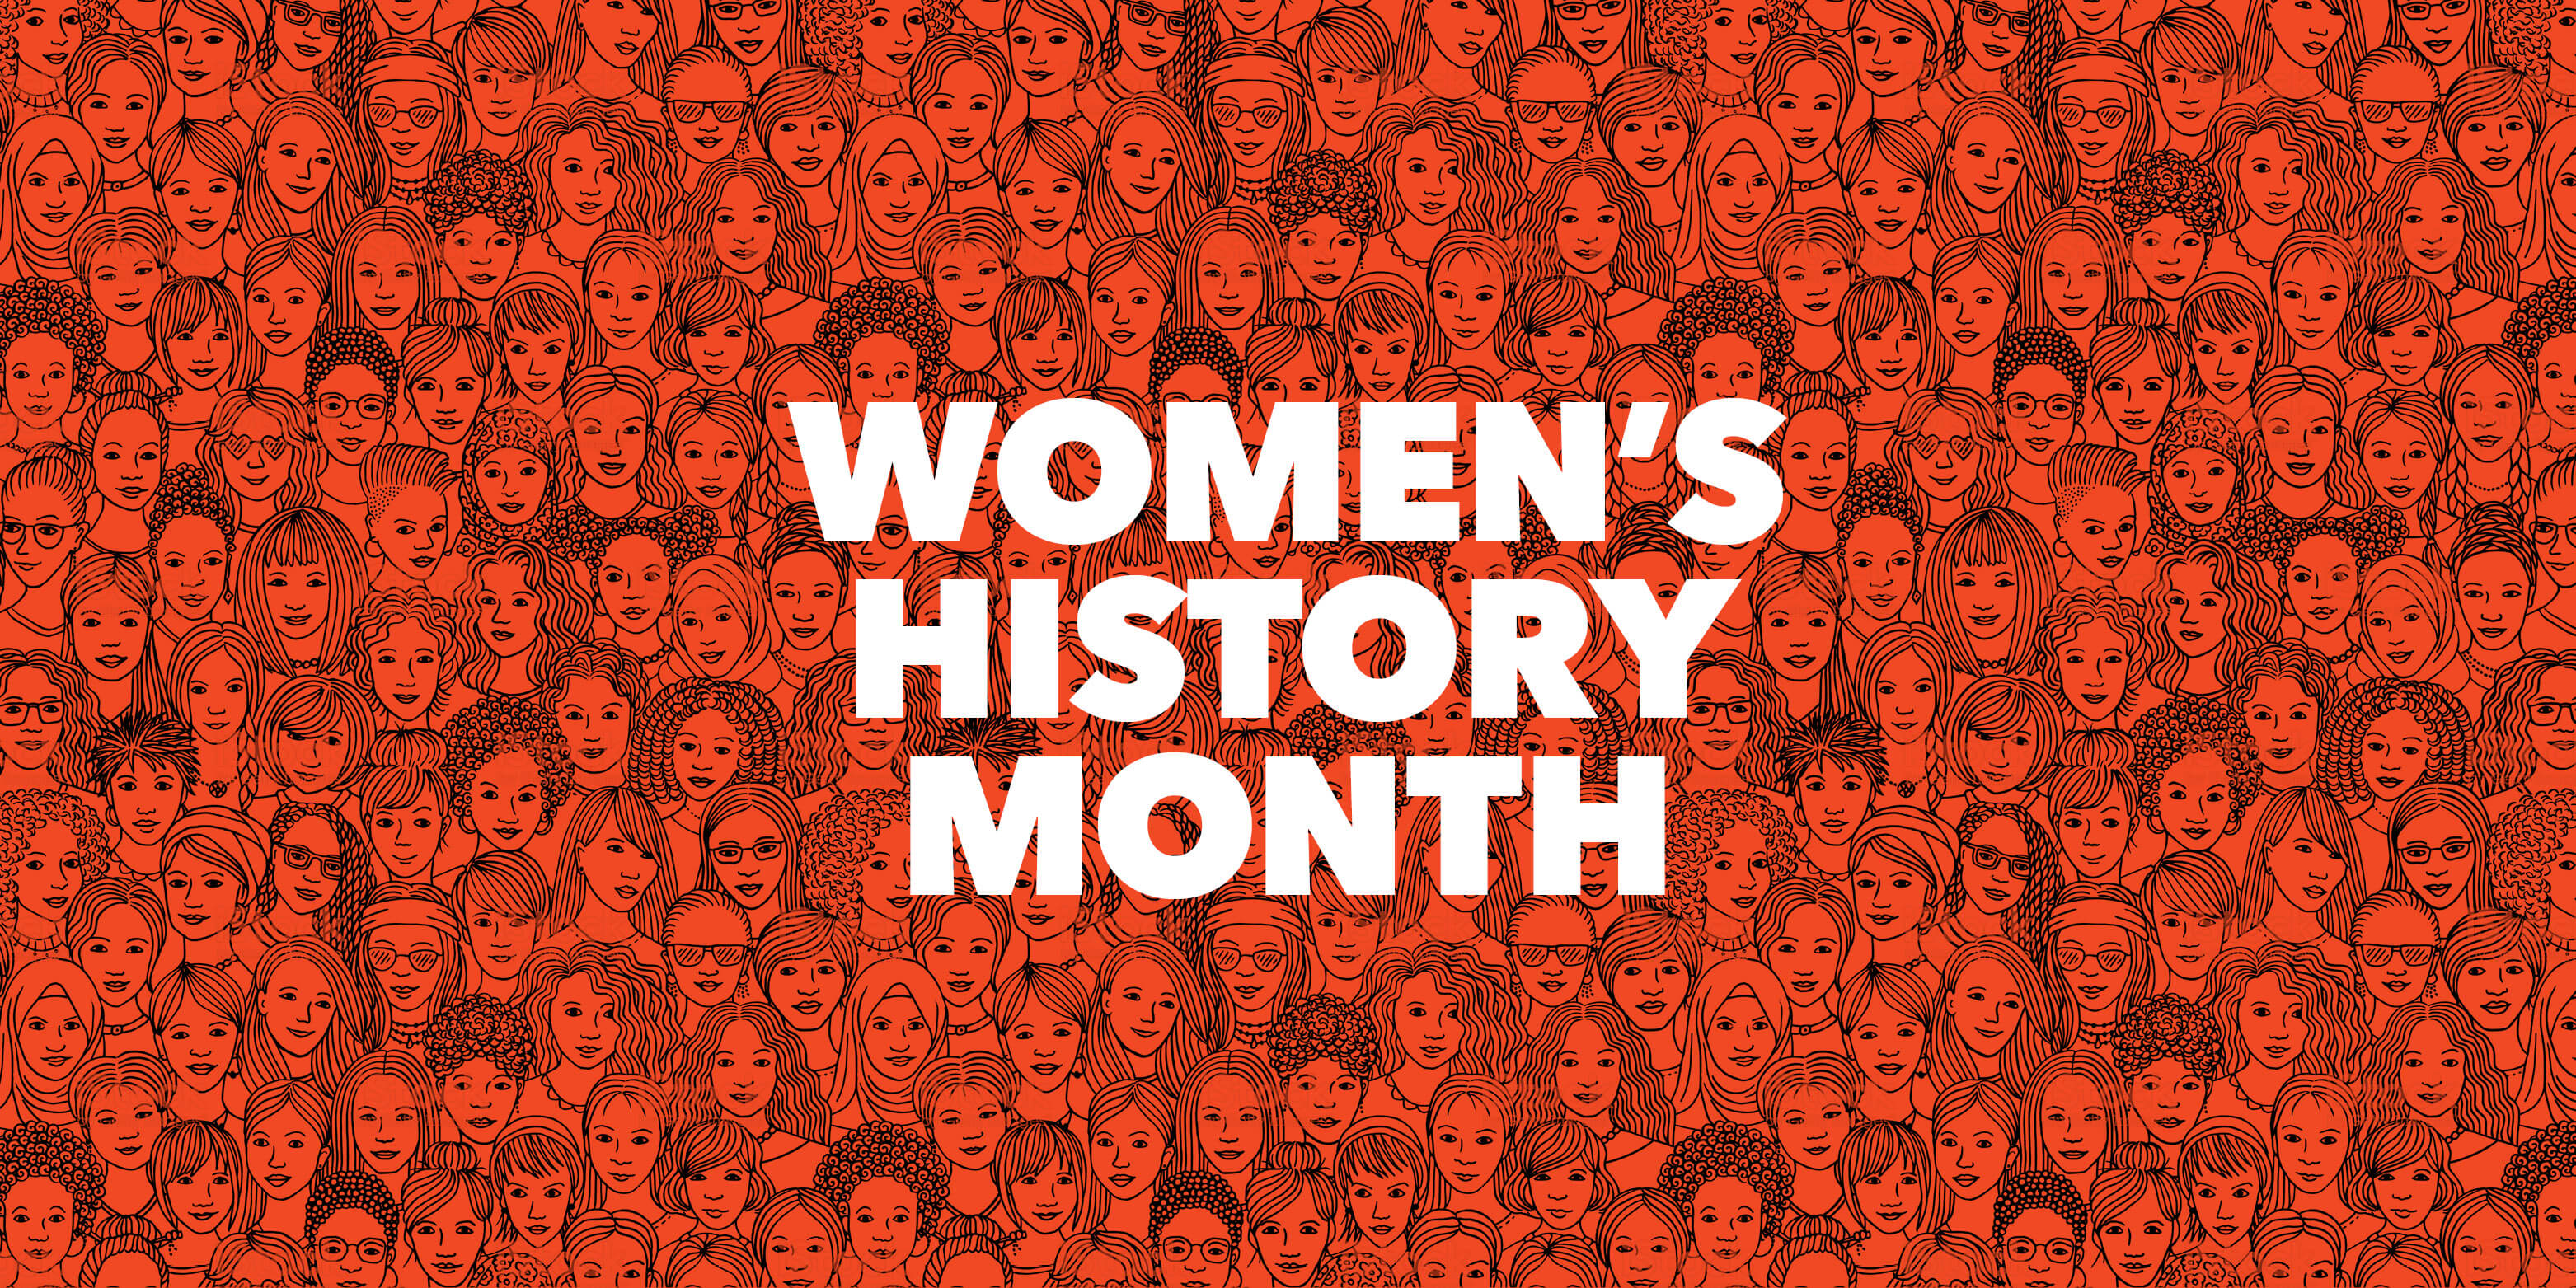 """""""Women's History Month"""" overlaid over persimmon illustration of diverse group of women"""